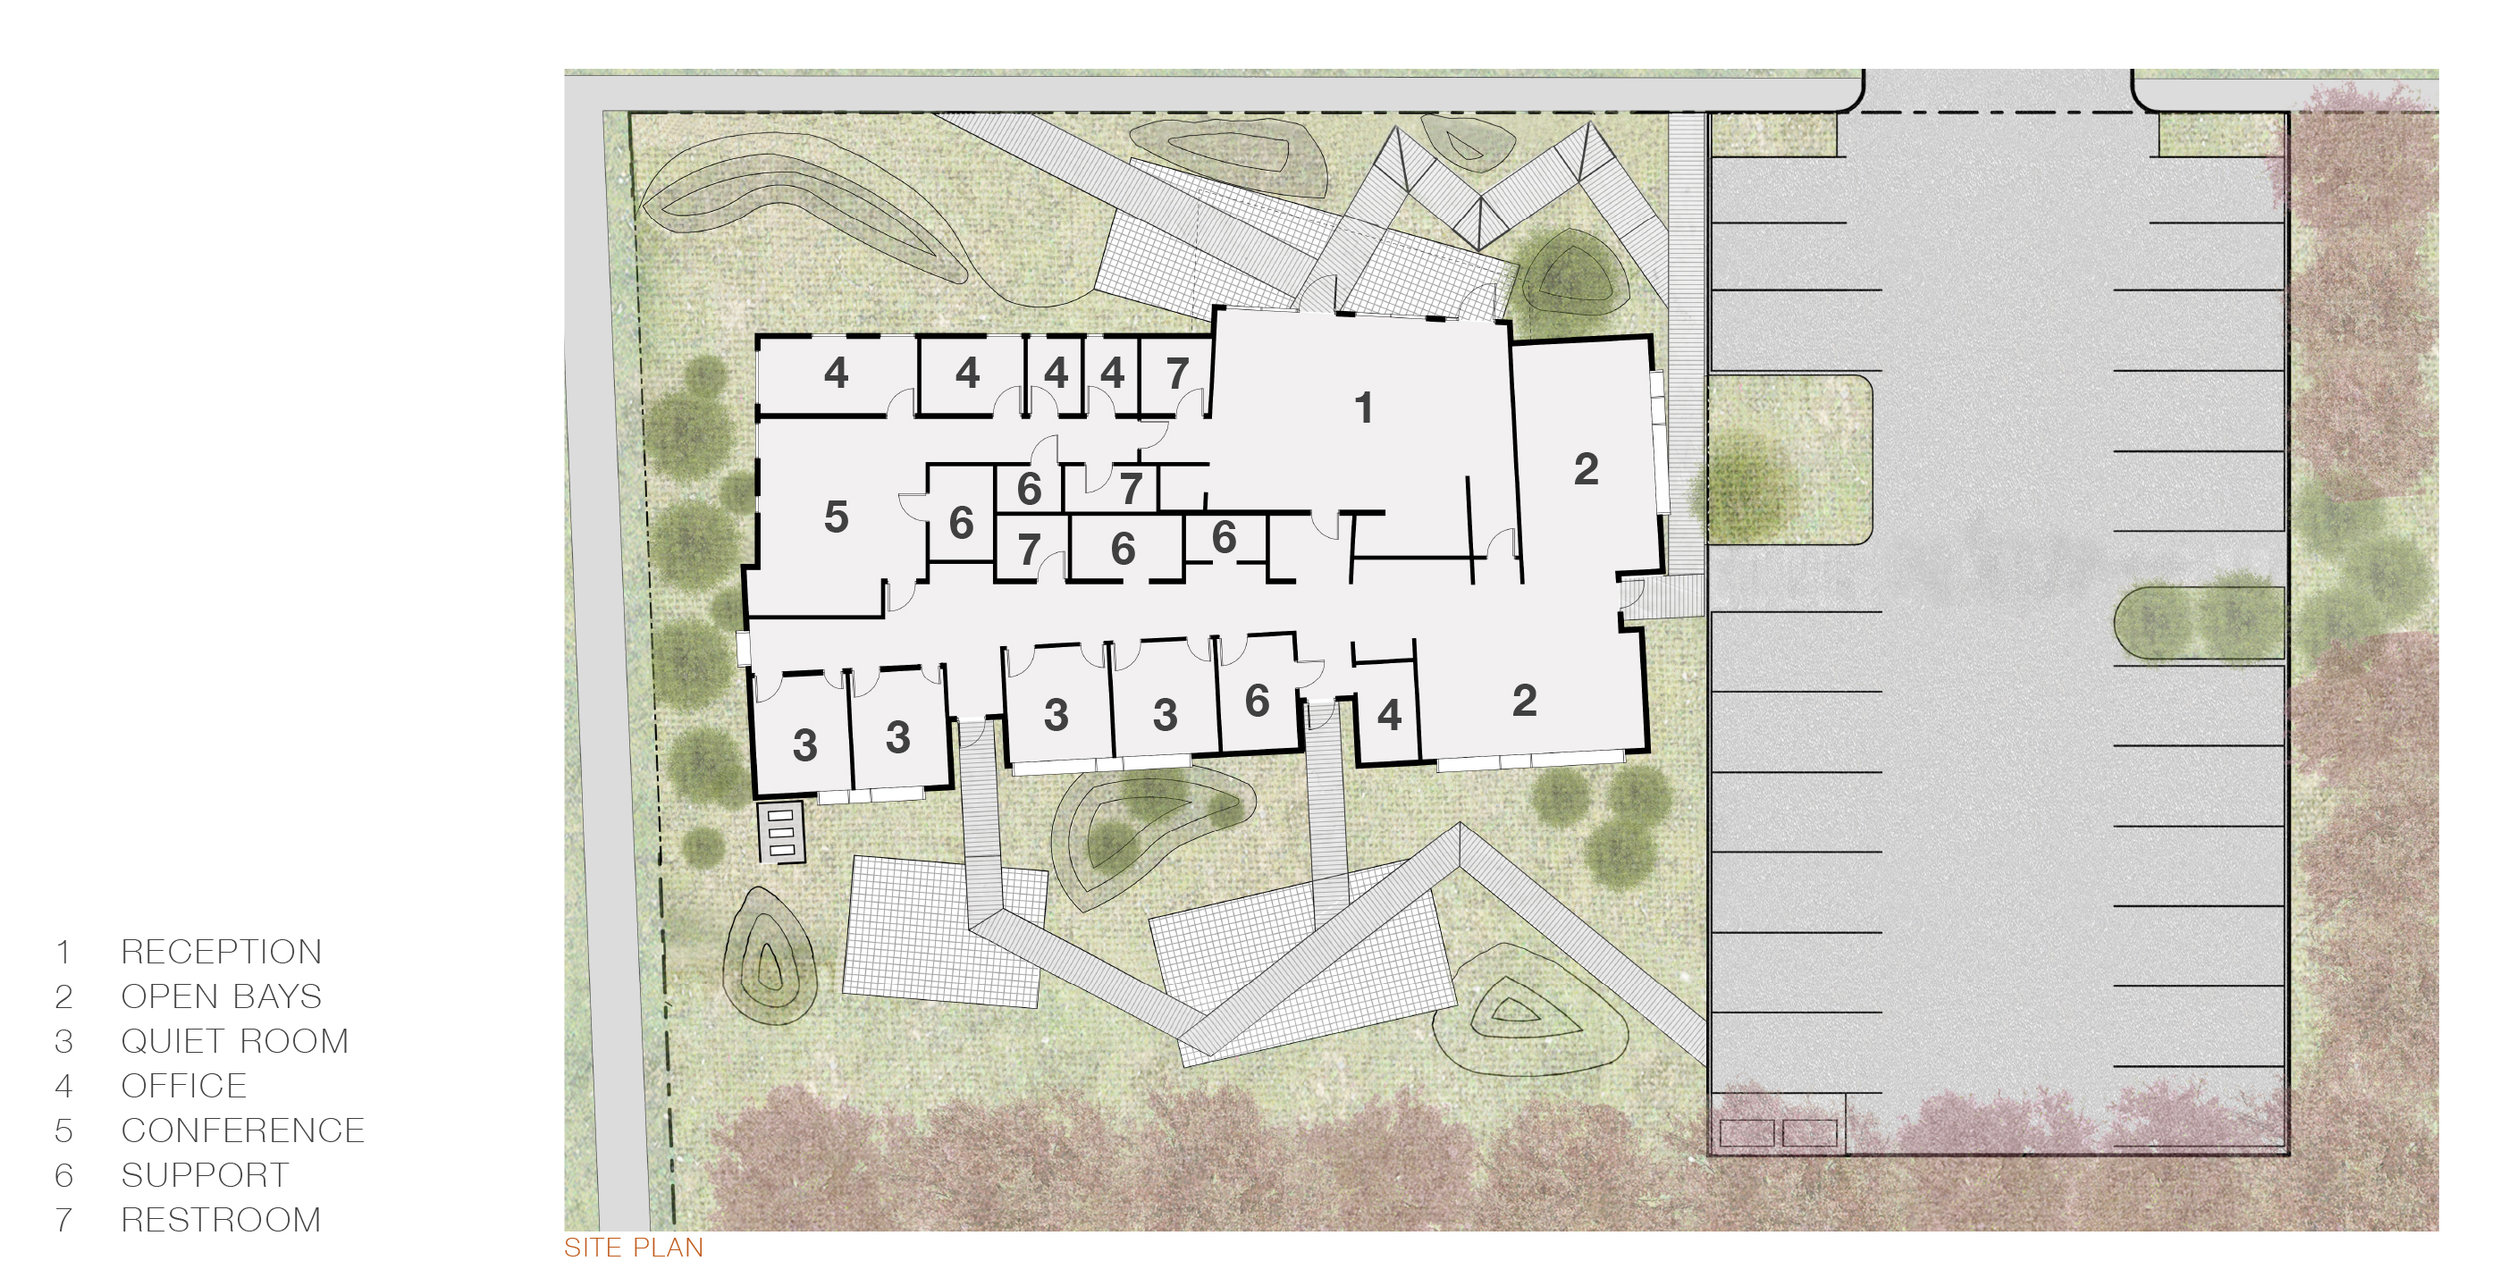 2018 _DENTAL CLINIC_SITE PLAN.jpg